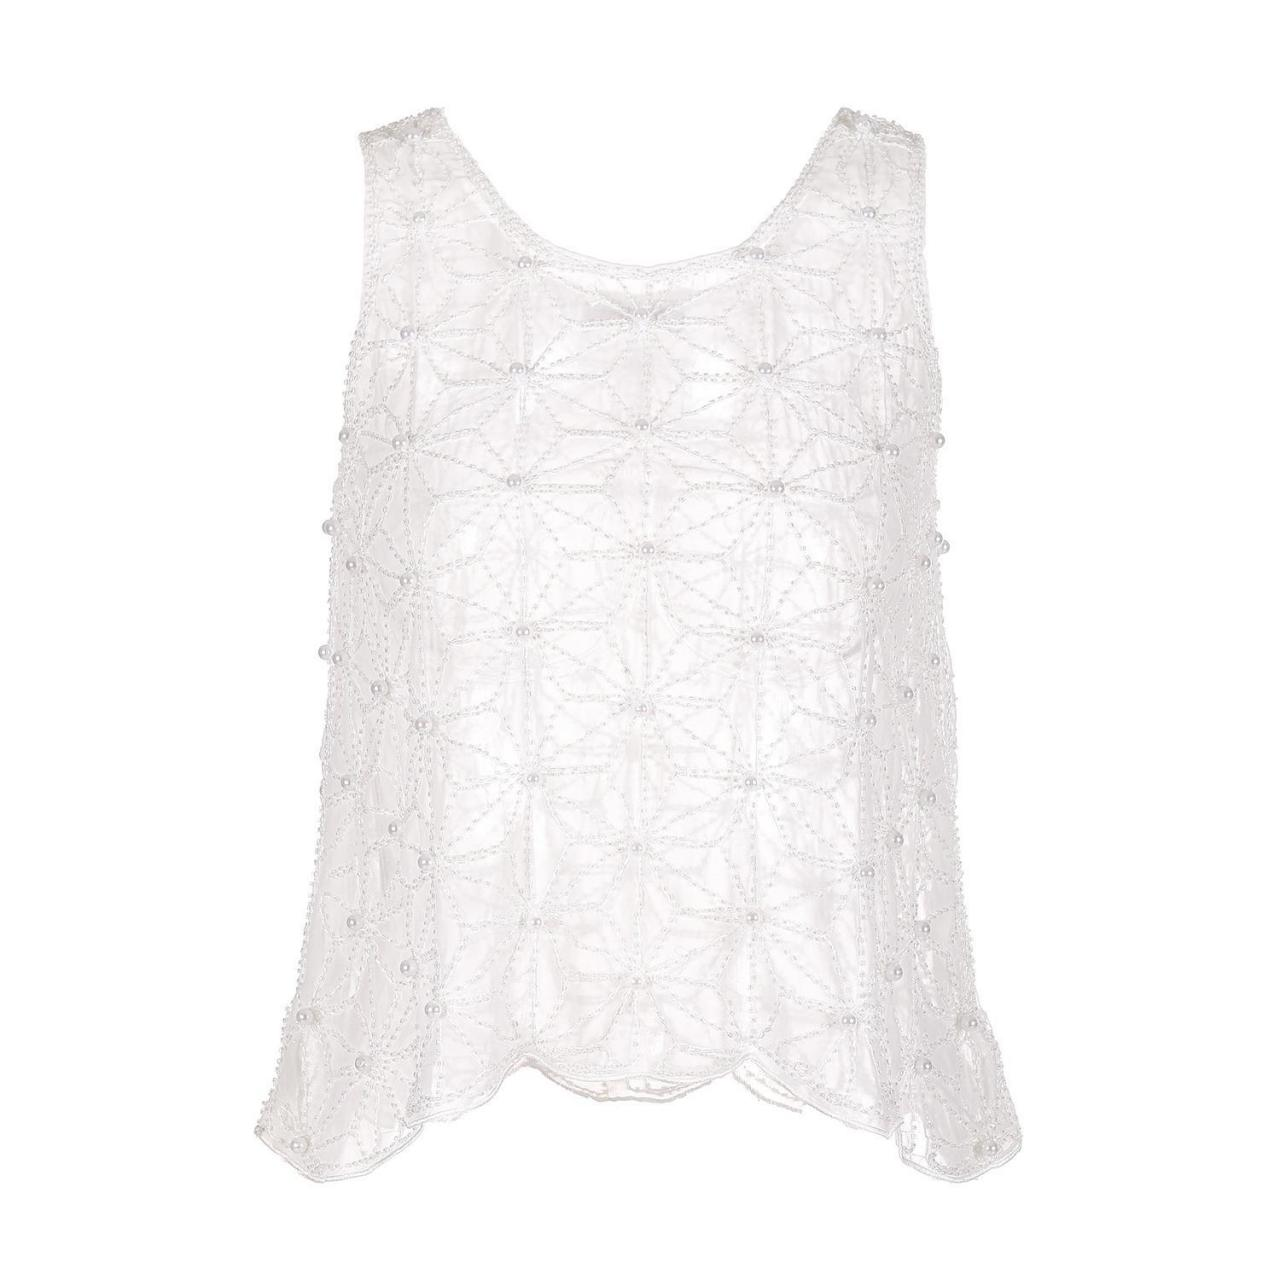 China Star girls' tops 23 on sale